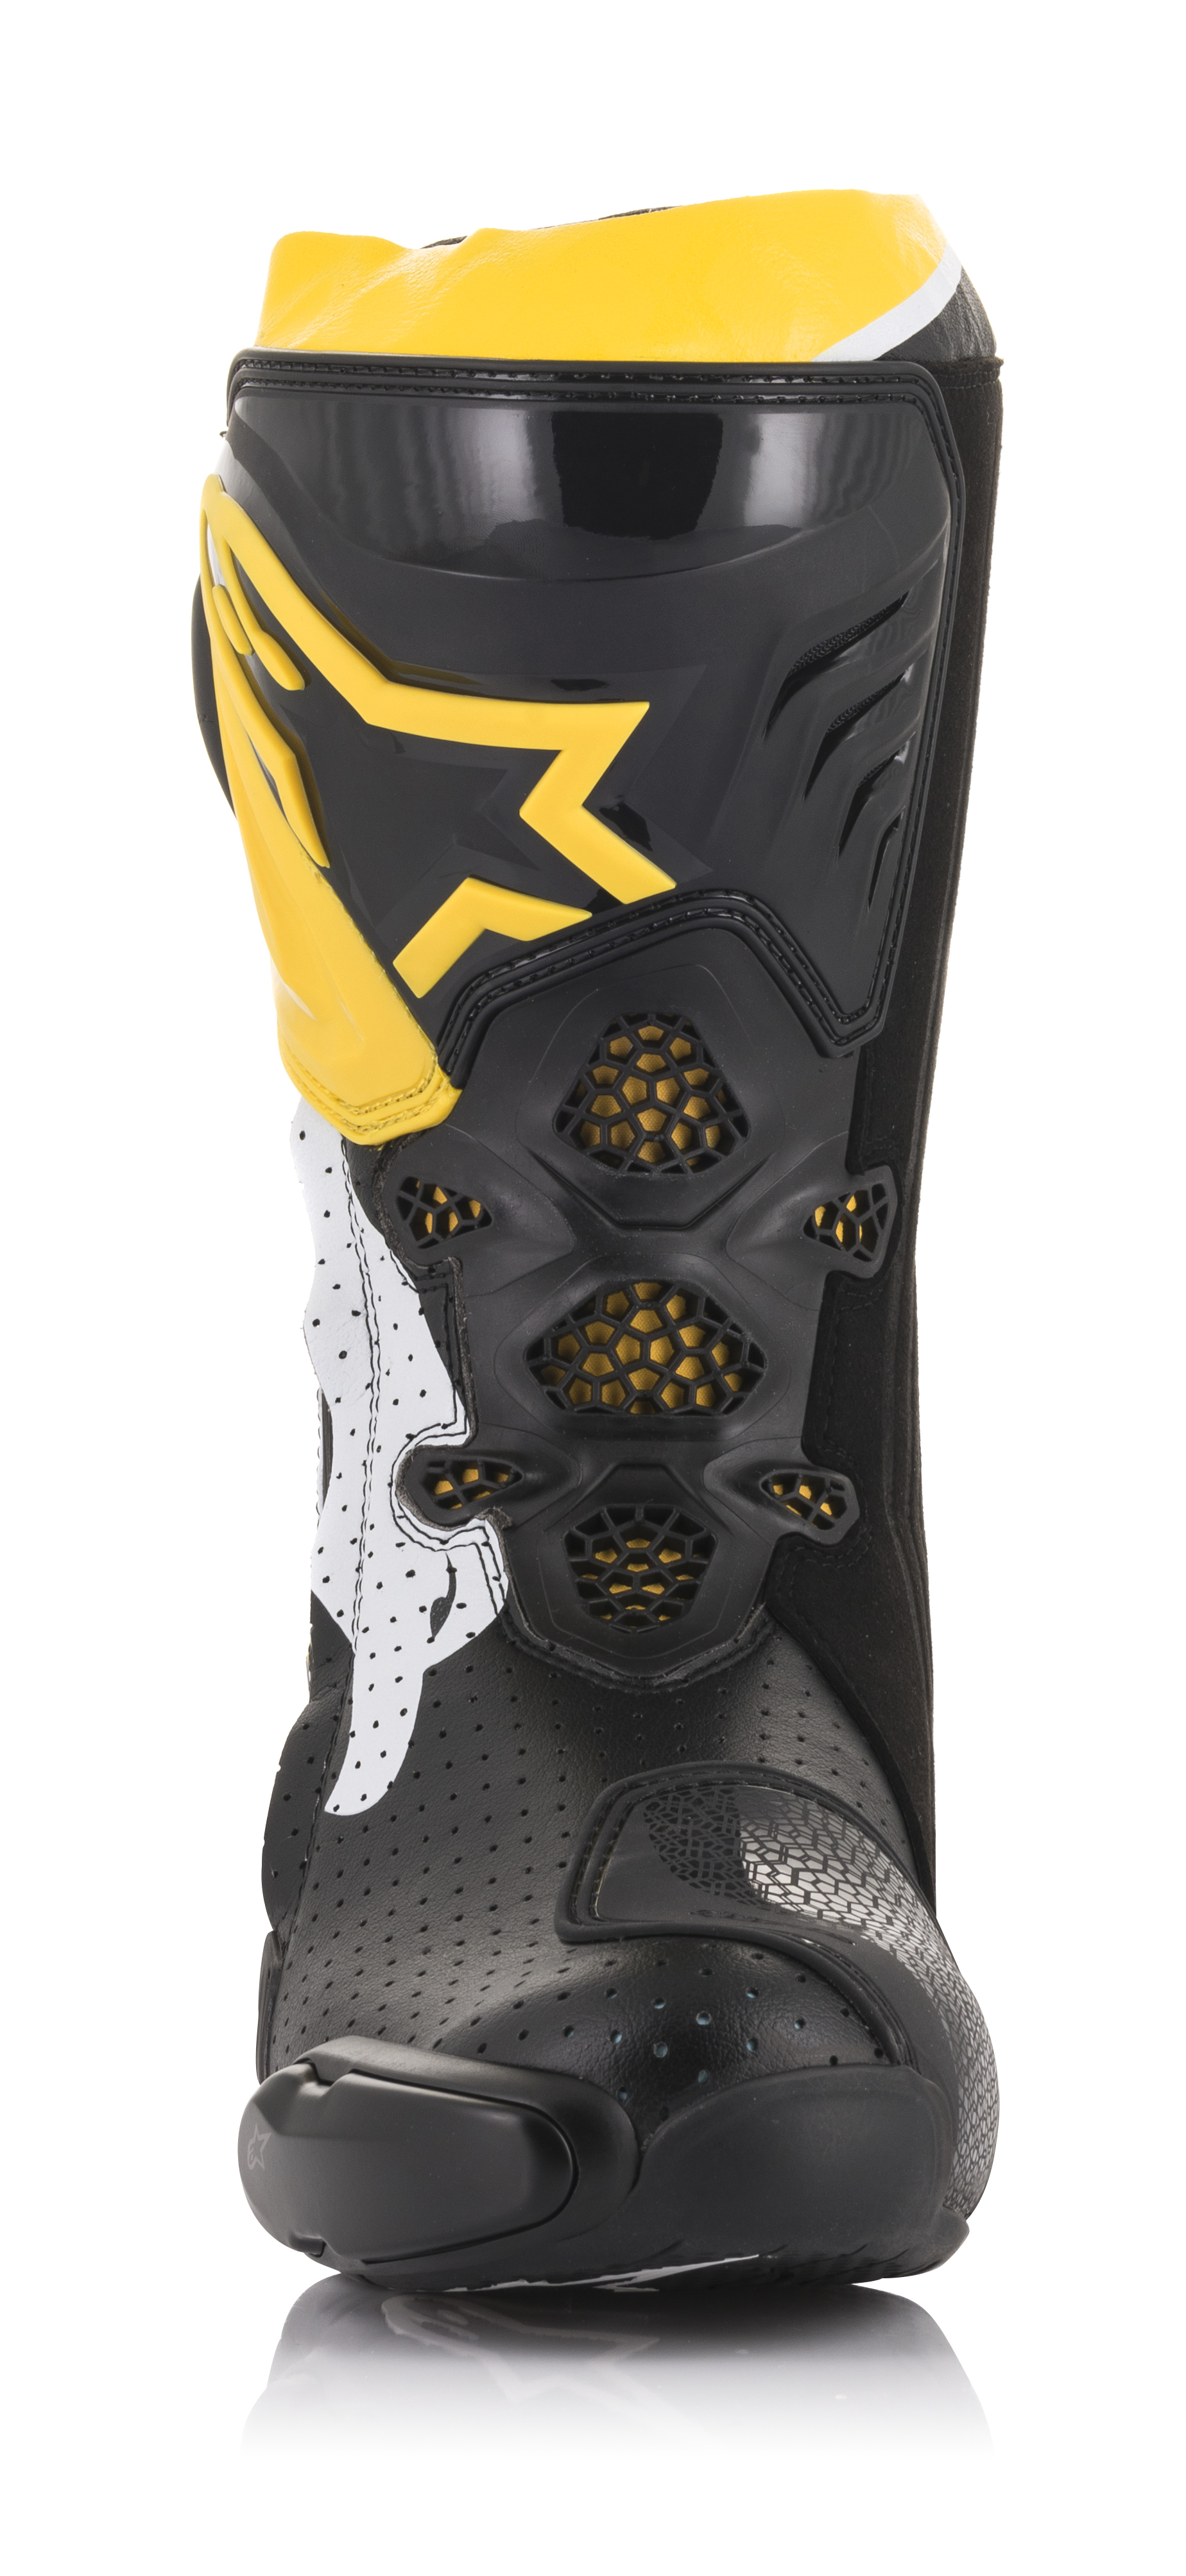 2220015-1522-r3_limited-edition-kenny-roberts-supertech-r-boot